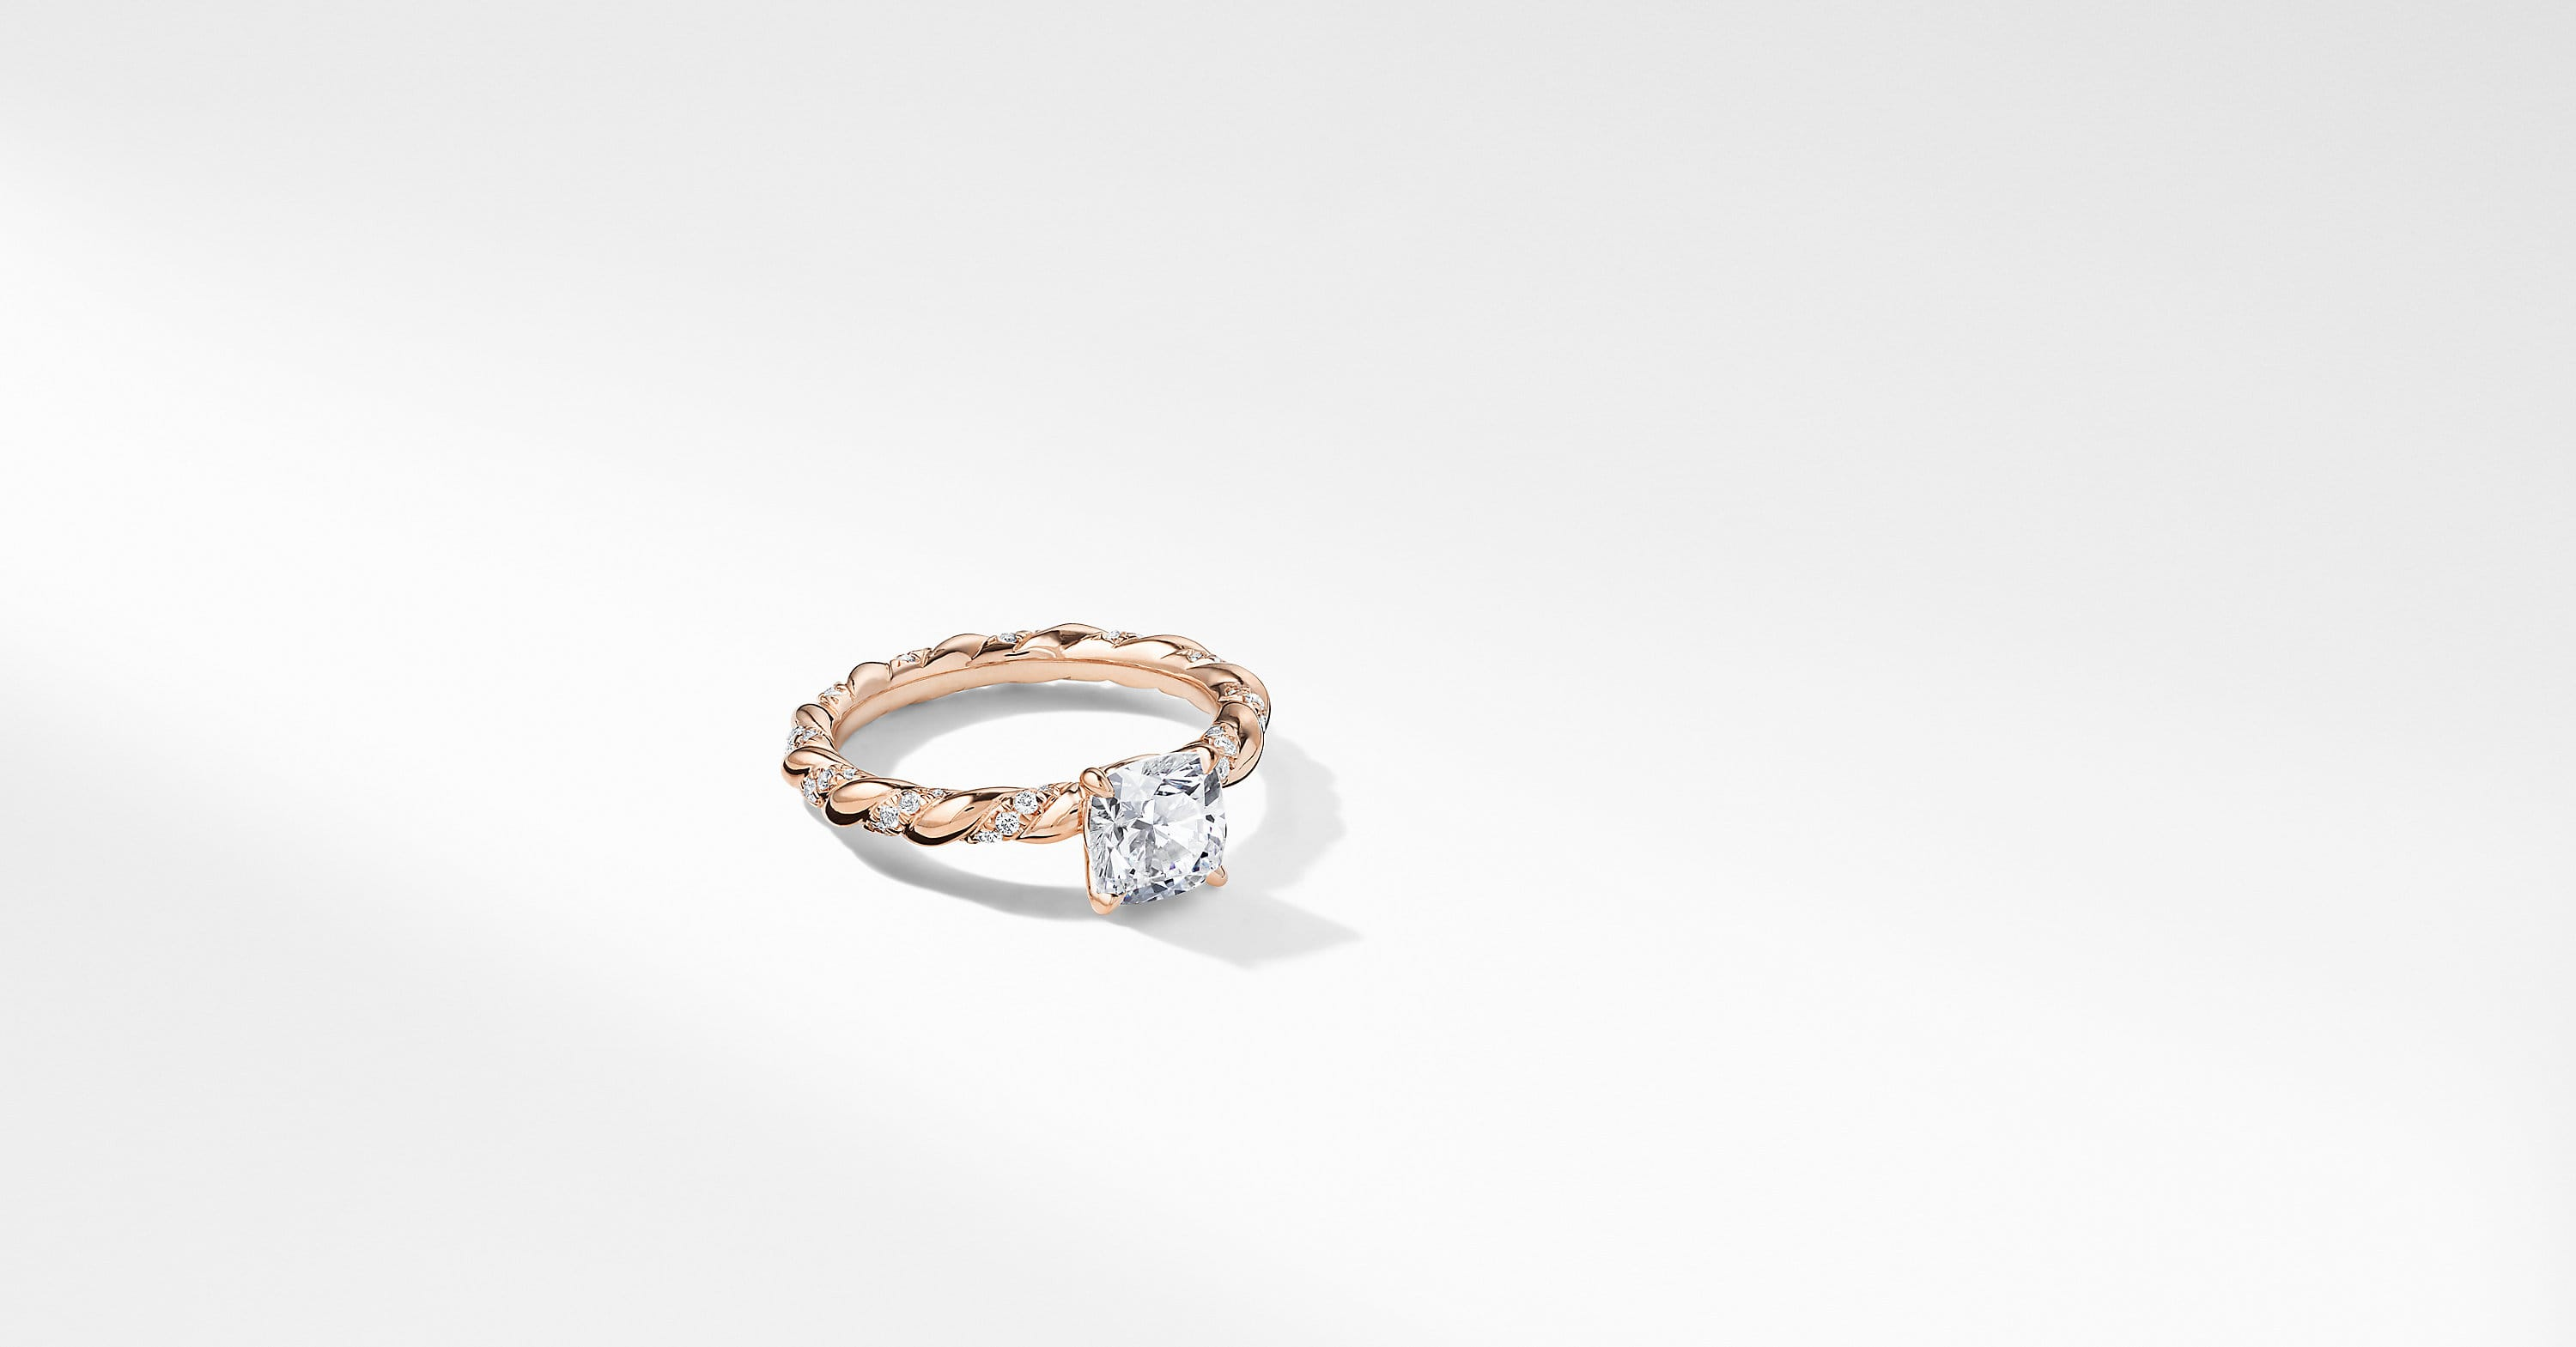 DY Unity Pavé Engagement Ring in 18K Rose Gold, Cushion